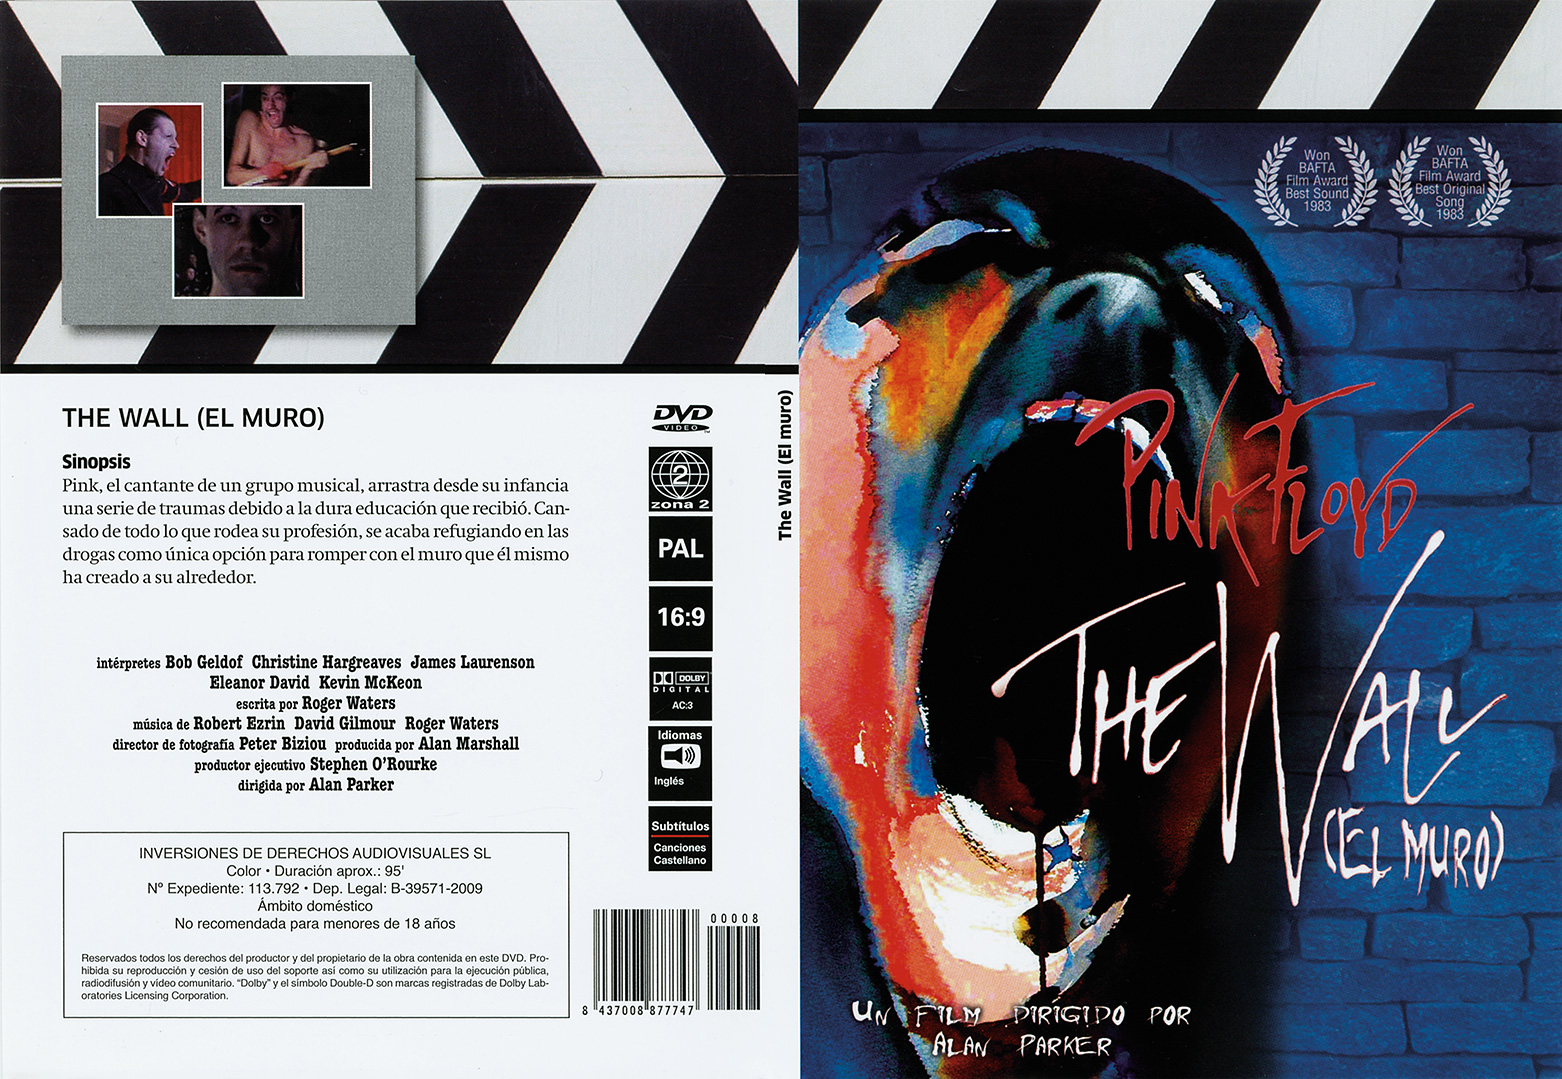 Pressing Plant Technodisco SA Spain Format Region PAL R2 Release Information Spanish DVD Of The Movie Pink Floyd